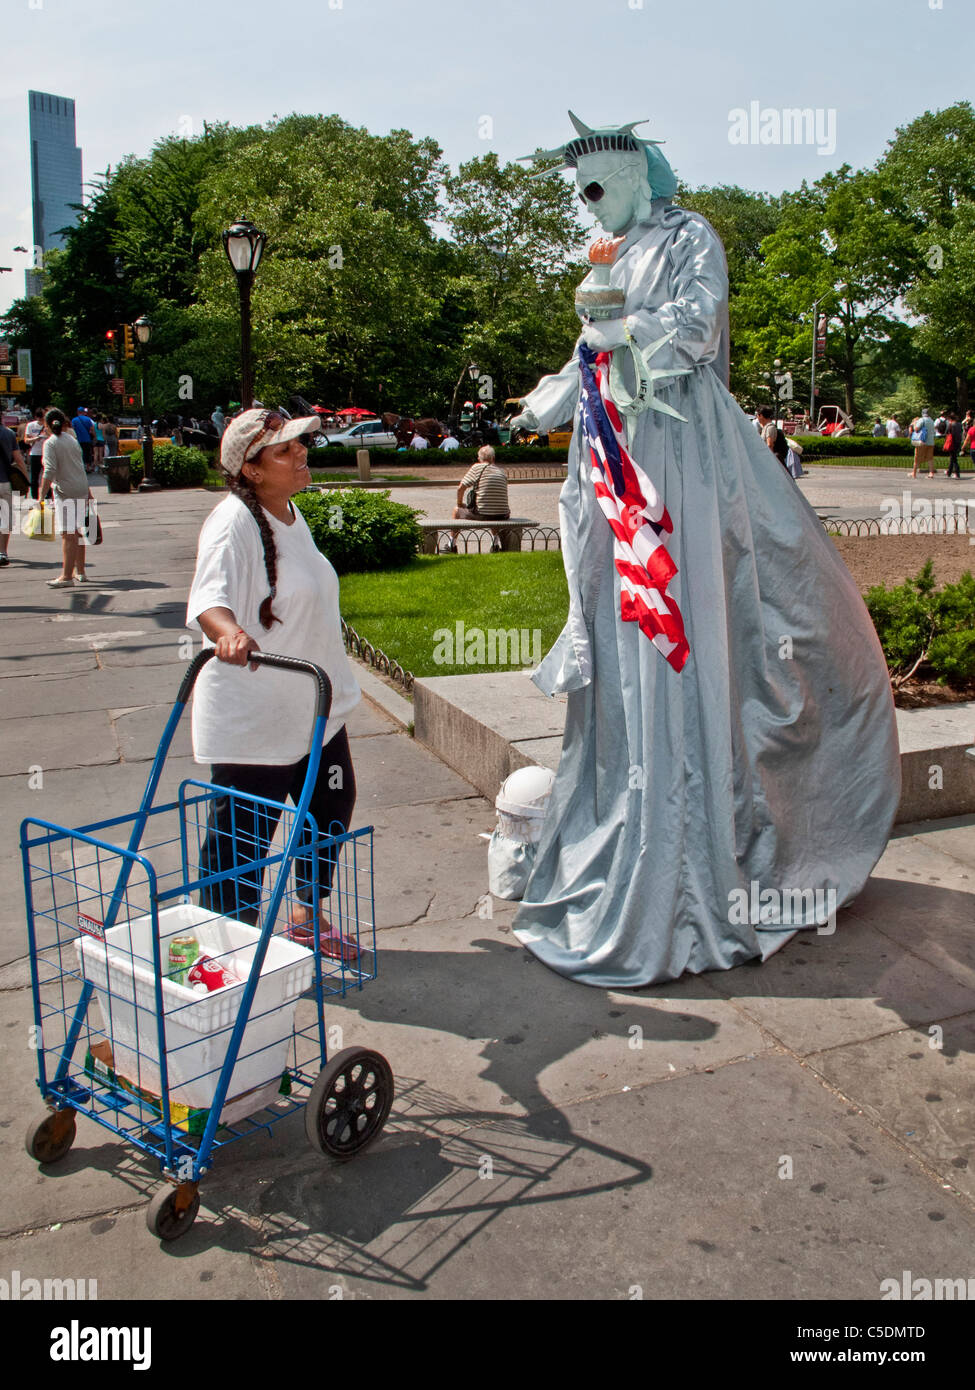 A mime dressed as the Statue of Liberty talks with a passerby on Fifth Avenue, Manhattan, New York City. Note sunglasses. - Stock Image